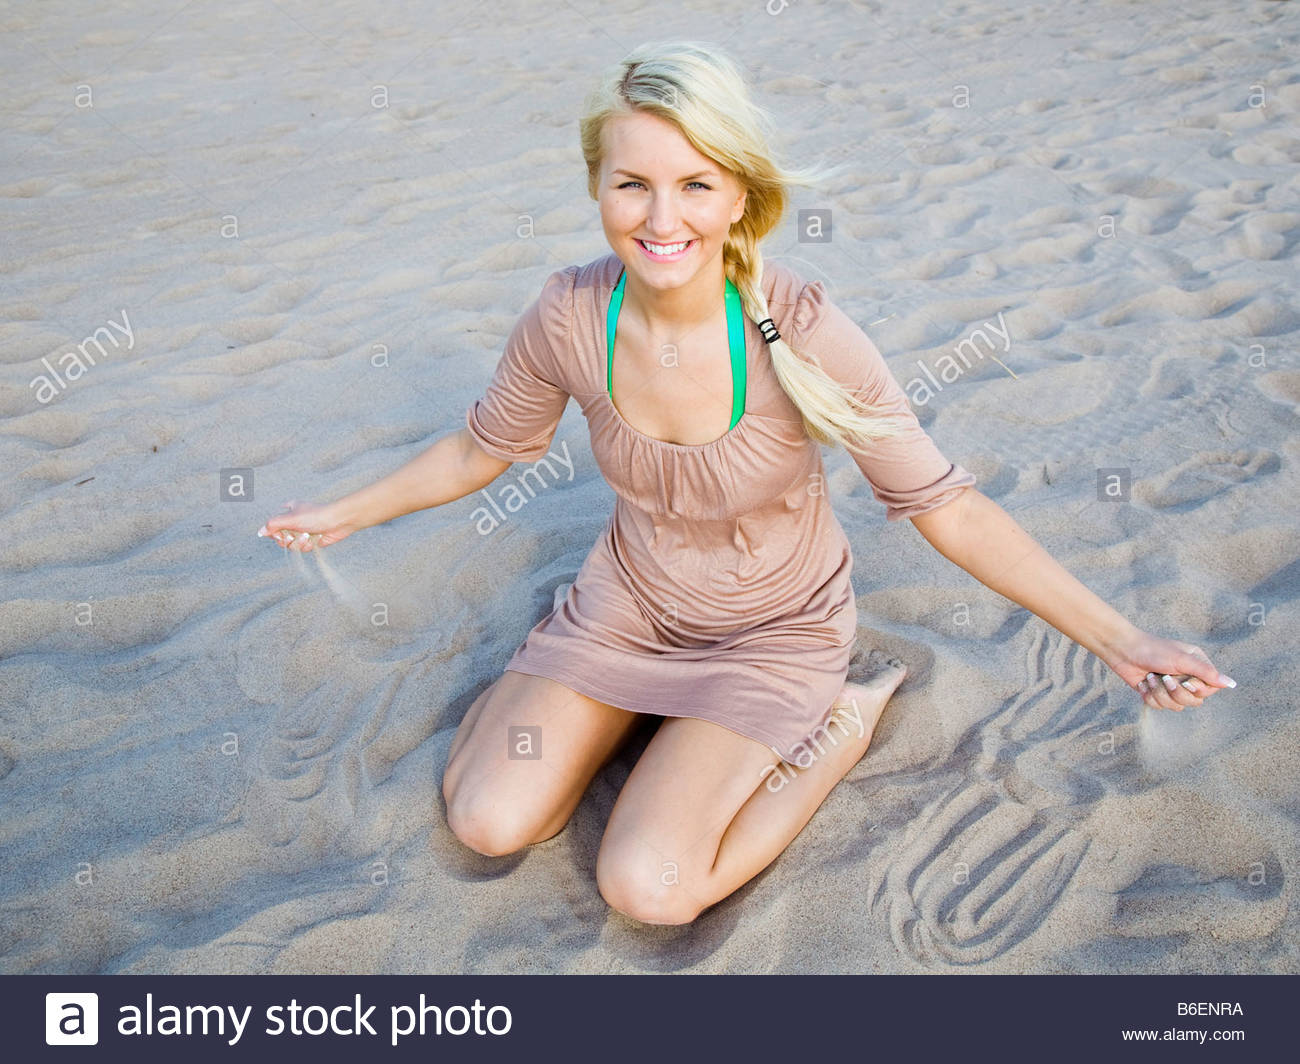 Girl sitting in the sand - Stock Image